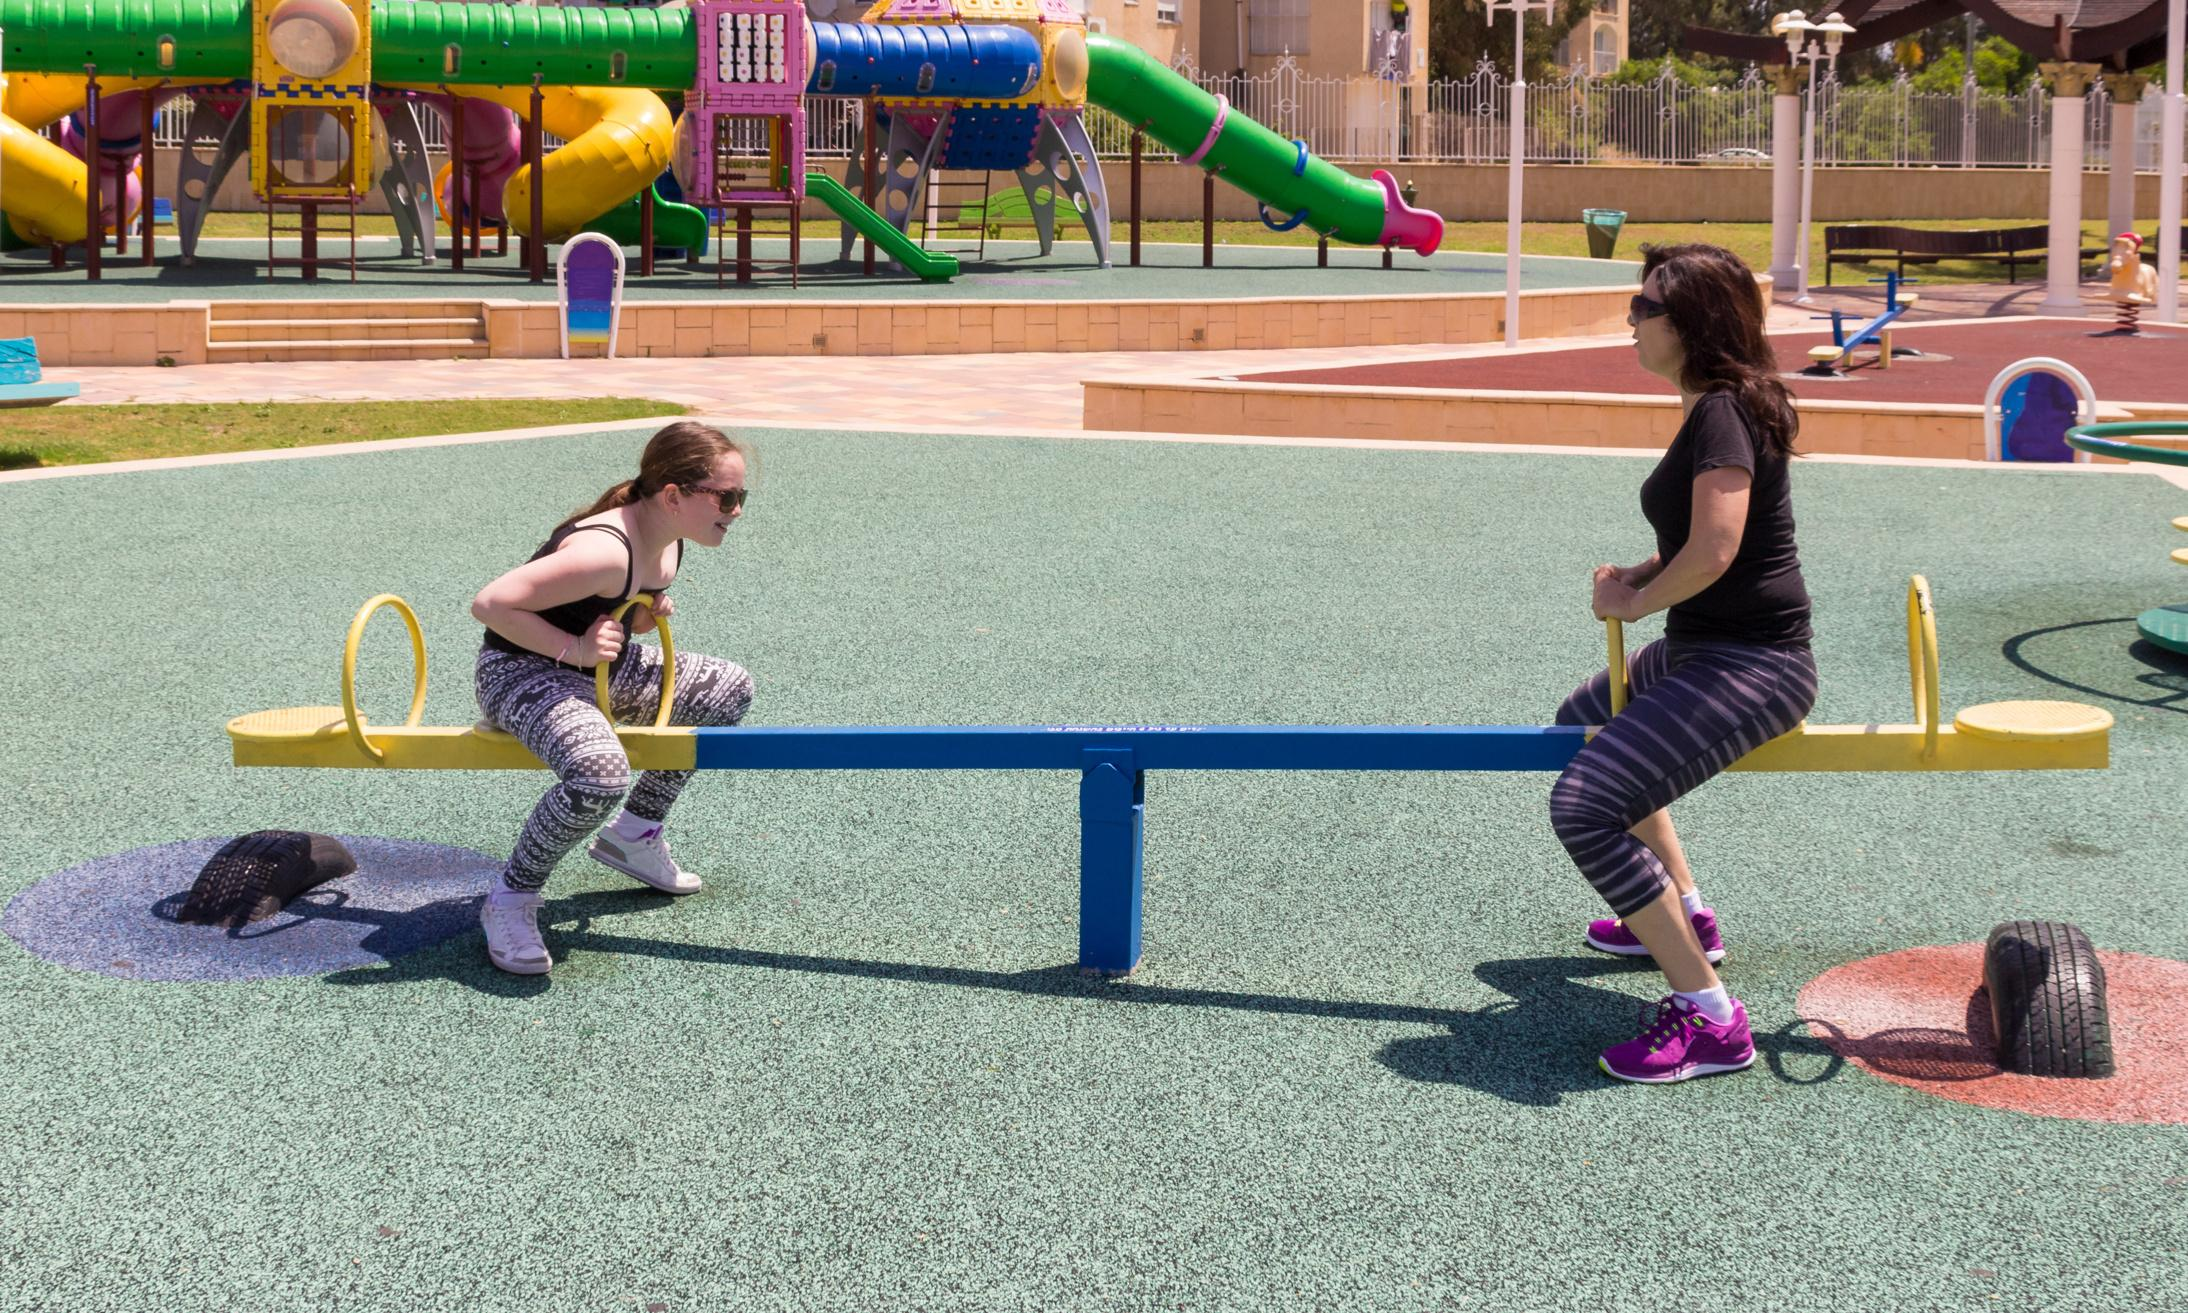 US playgrounds: fears grow over health risks from rubber particles